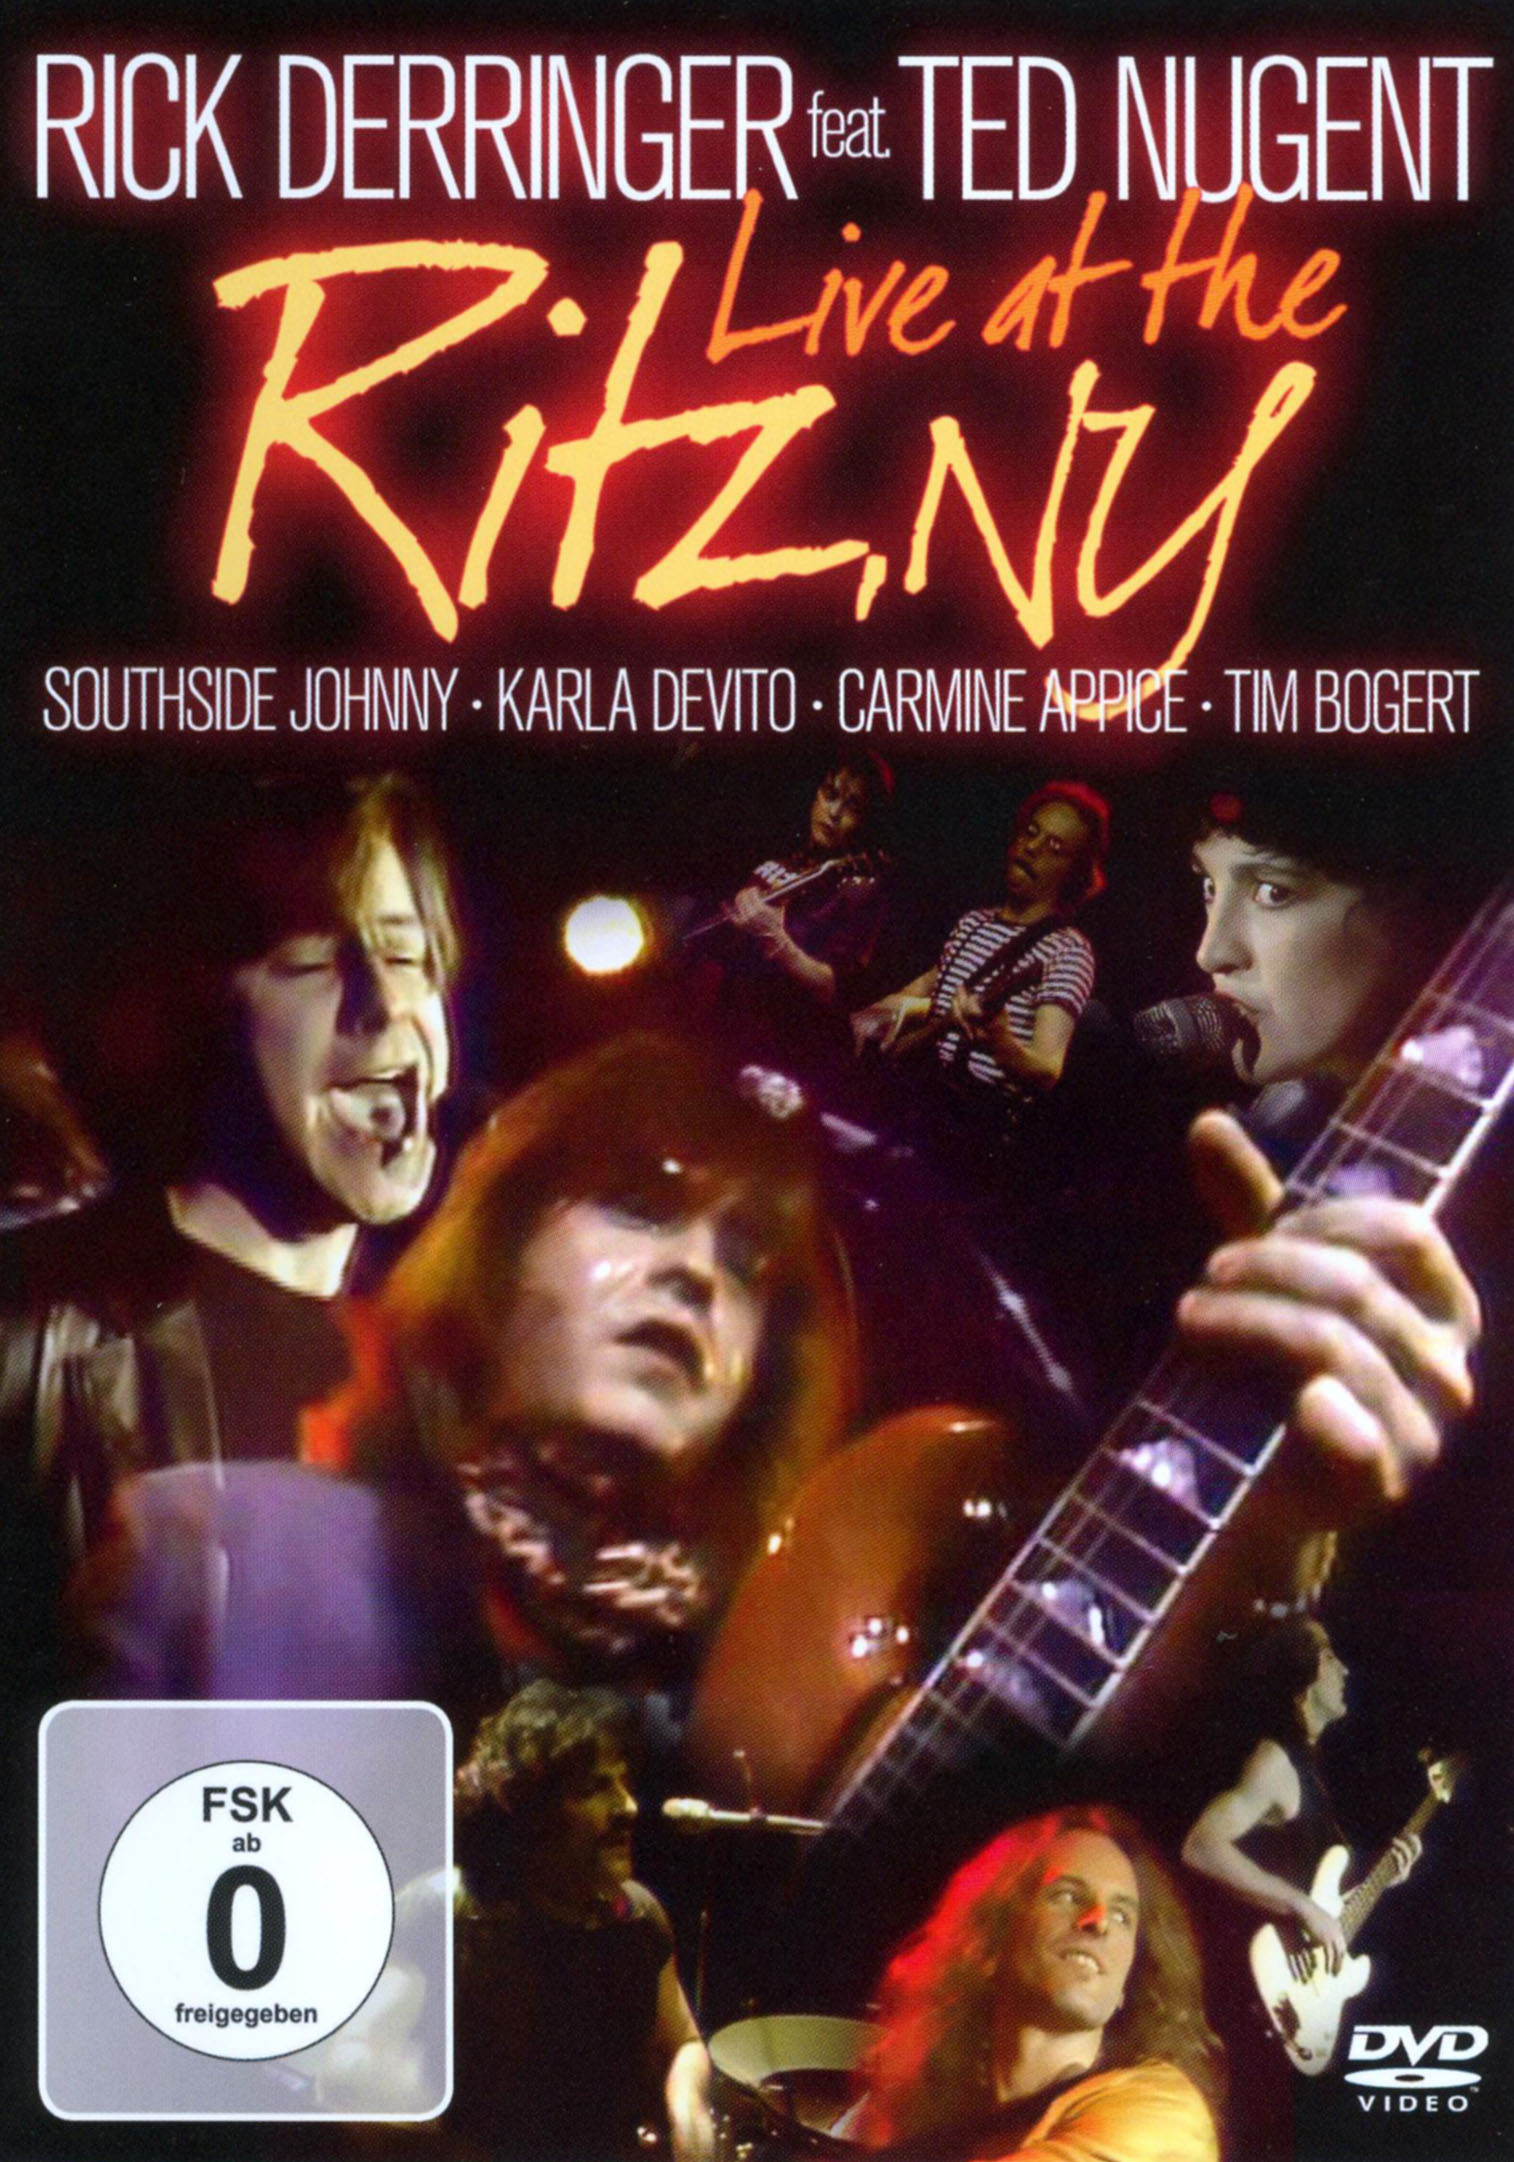 Rick Derringer Featuring Ted Nugent: Live at The Ritz, NY